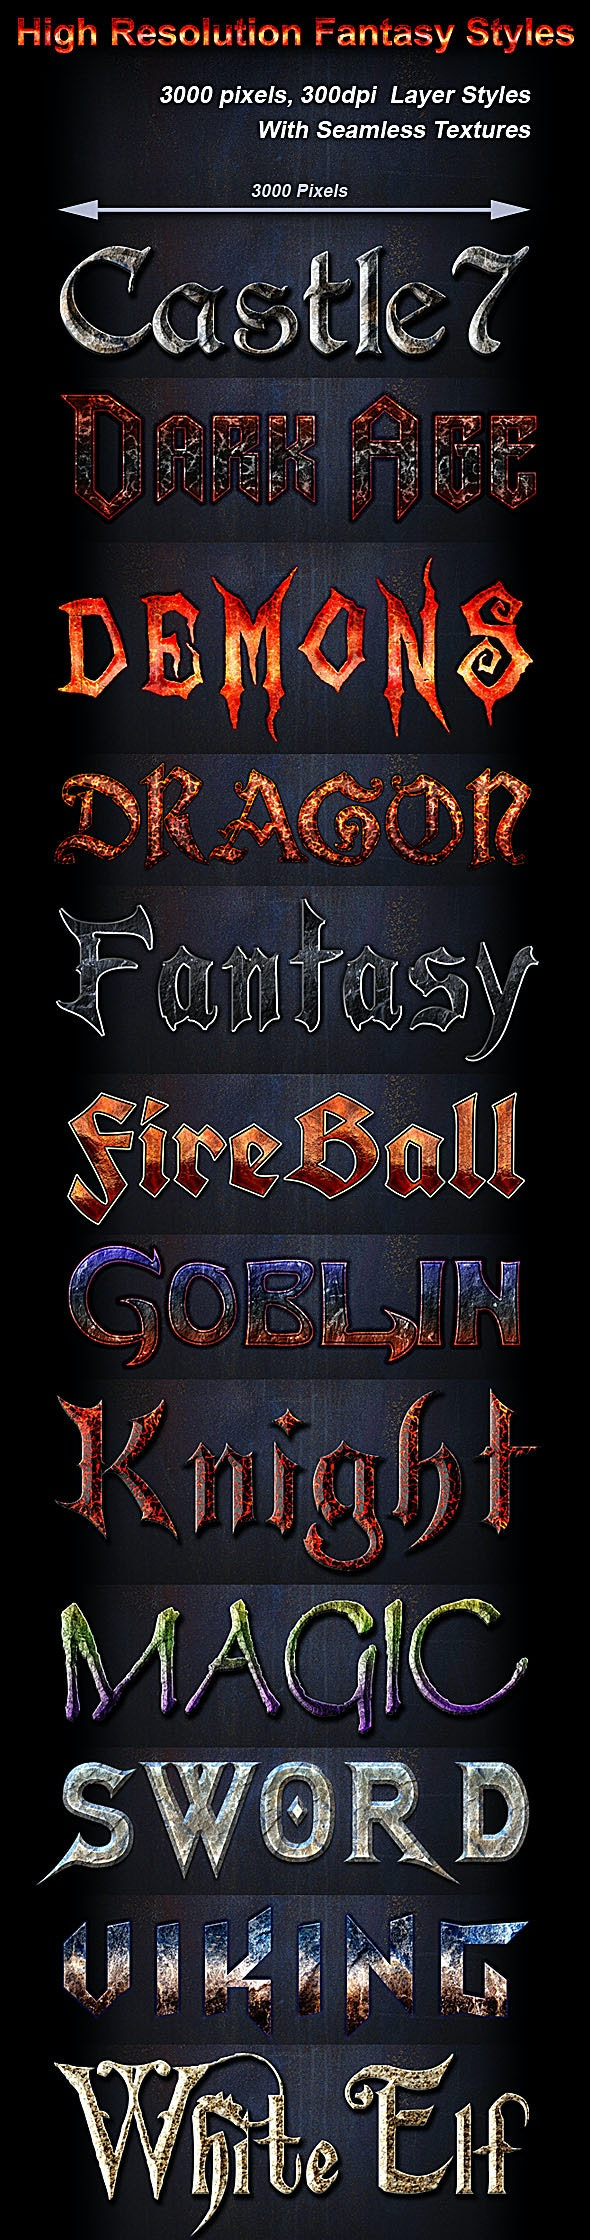 High Resolution Fantasy Styles - Text Effects Styles